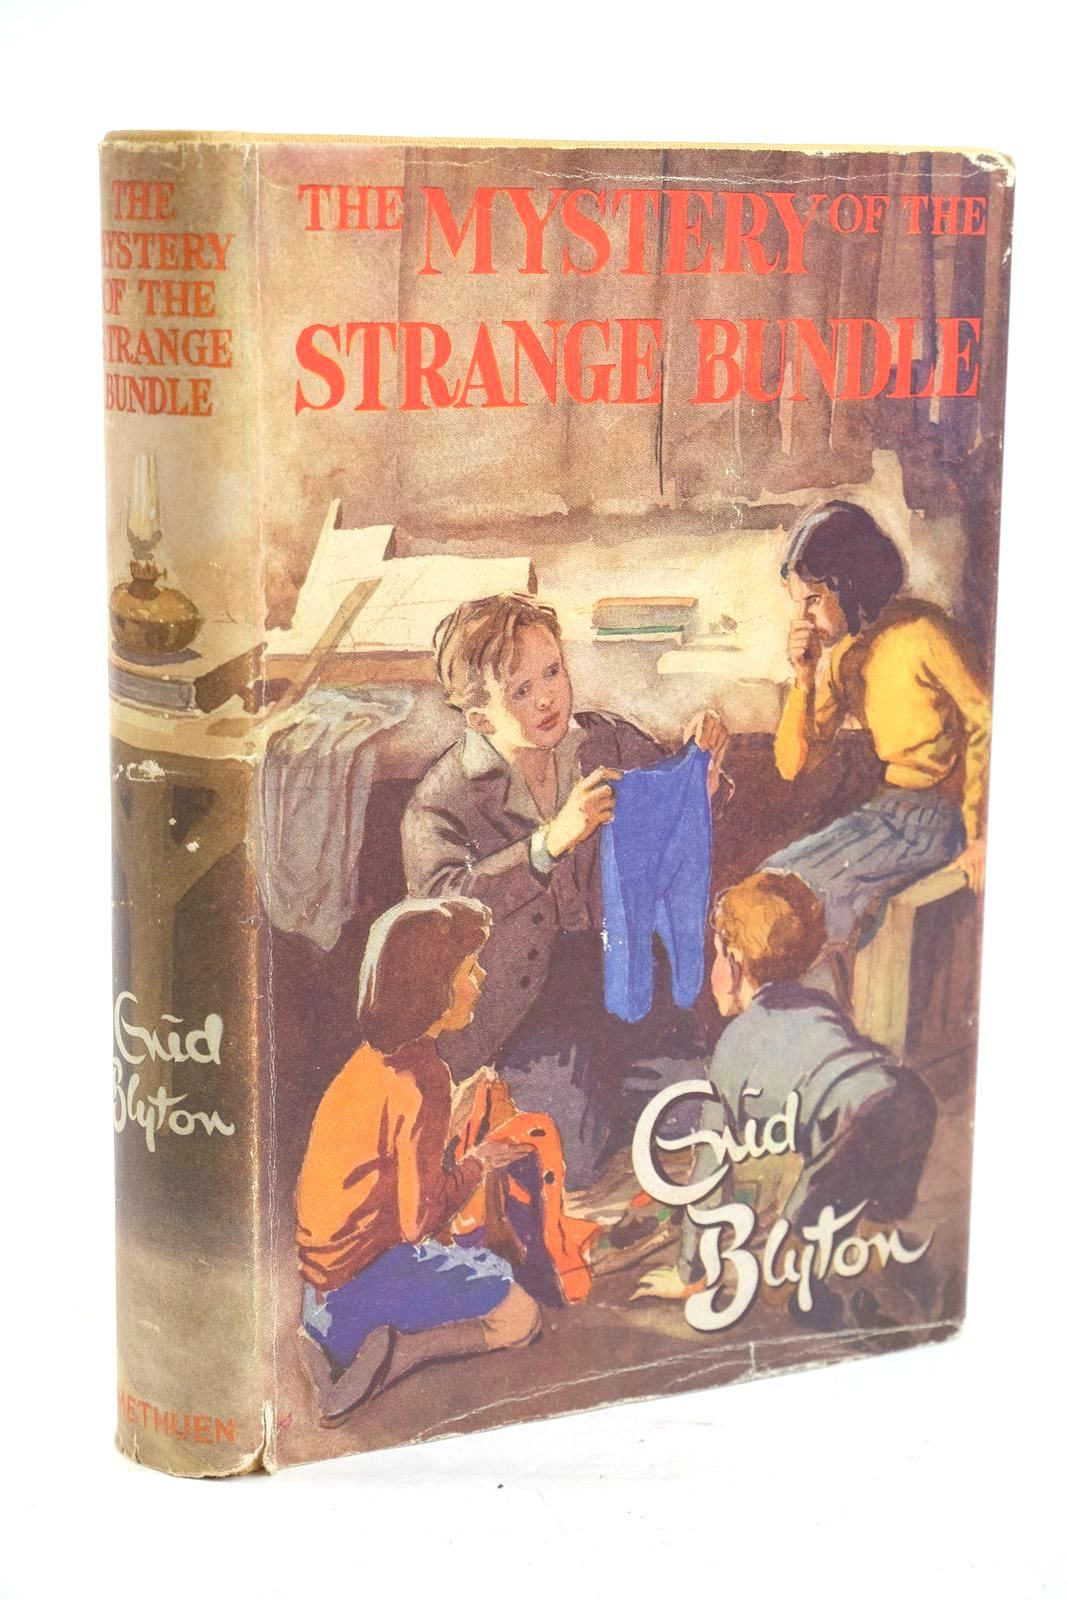 Photo of THE MYSTERY OF THE STRANGE BUNDLE written by Blyton, Enid illustrated by Evans, Treyer published by Methuen & Co. Ltd. (STOCK CODE: 1320054)  for sale by Stella & Rose's Books